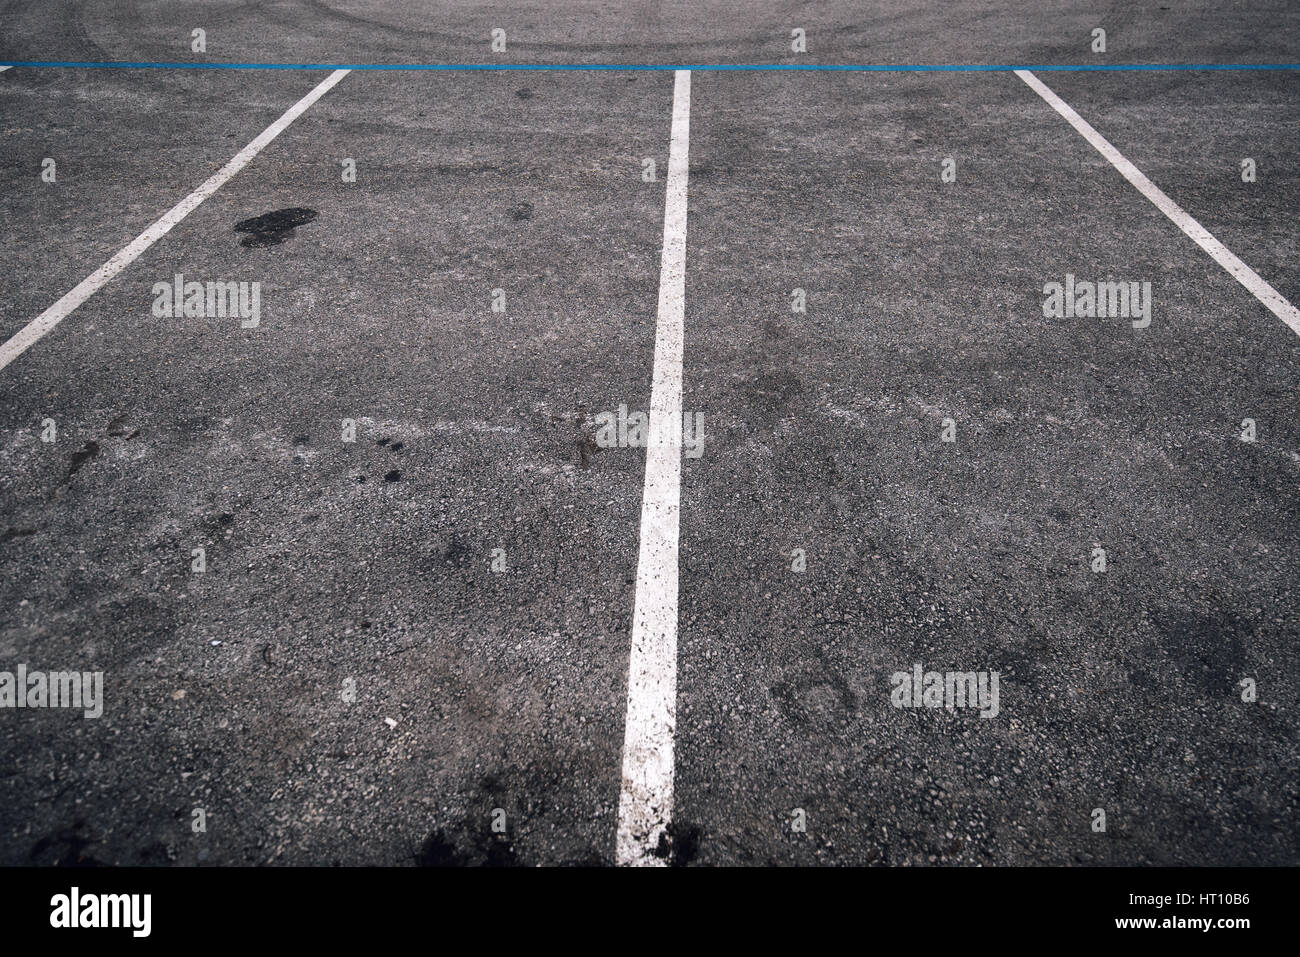 Empty parking lot space for cars, vanishing point perspective - Stock Image